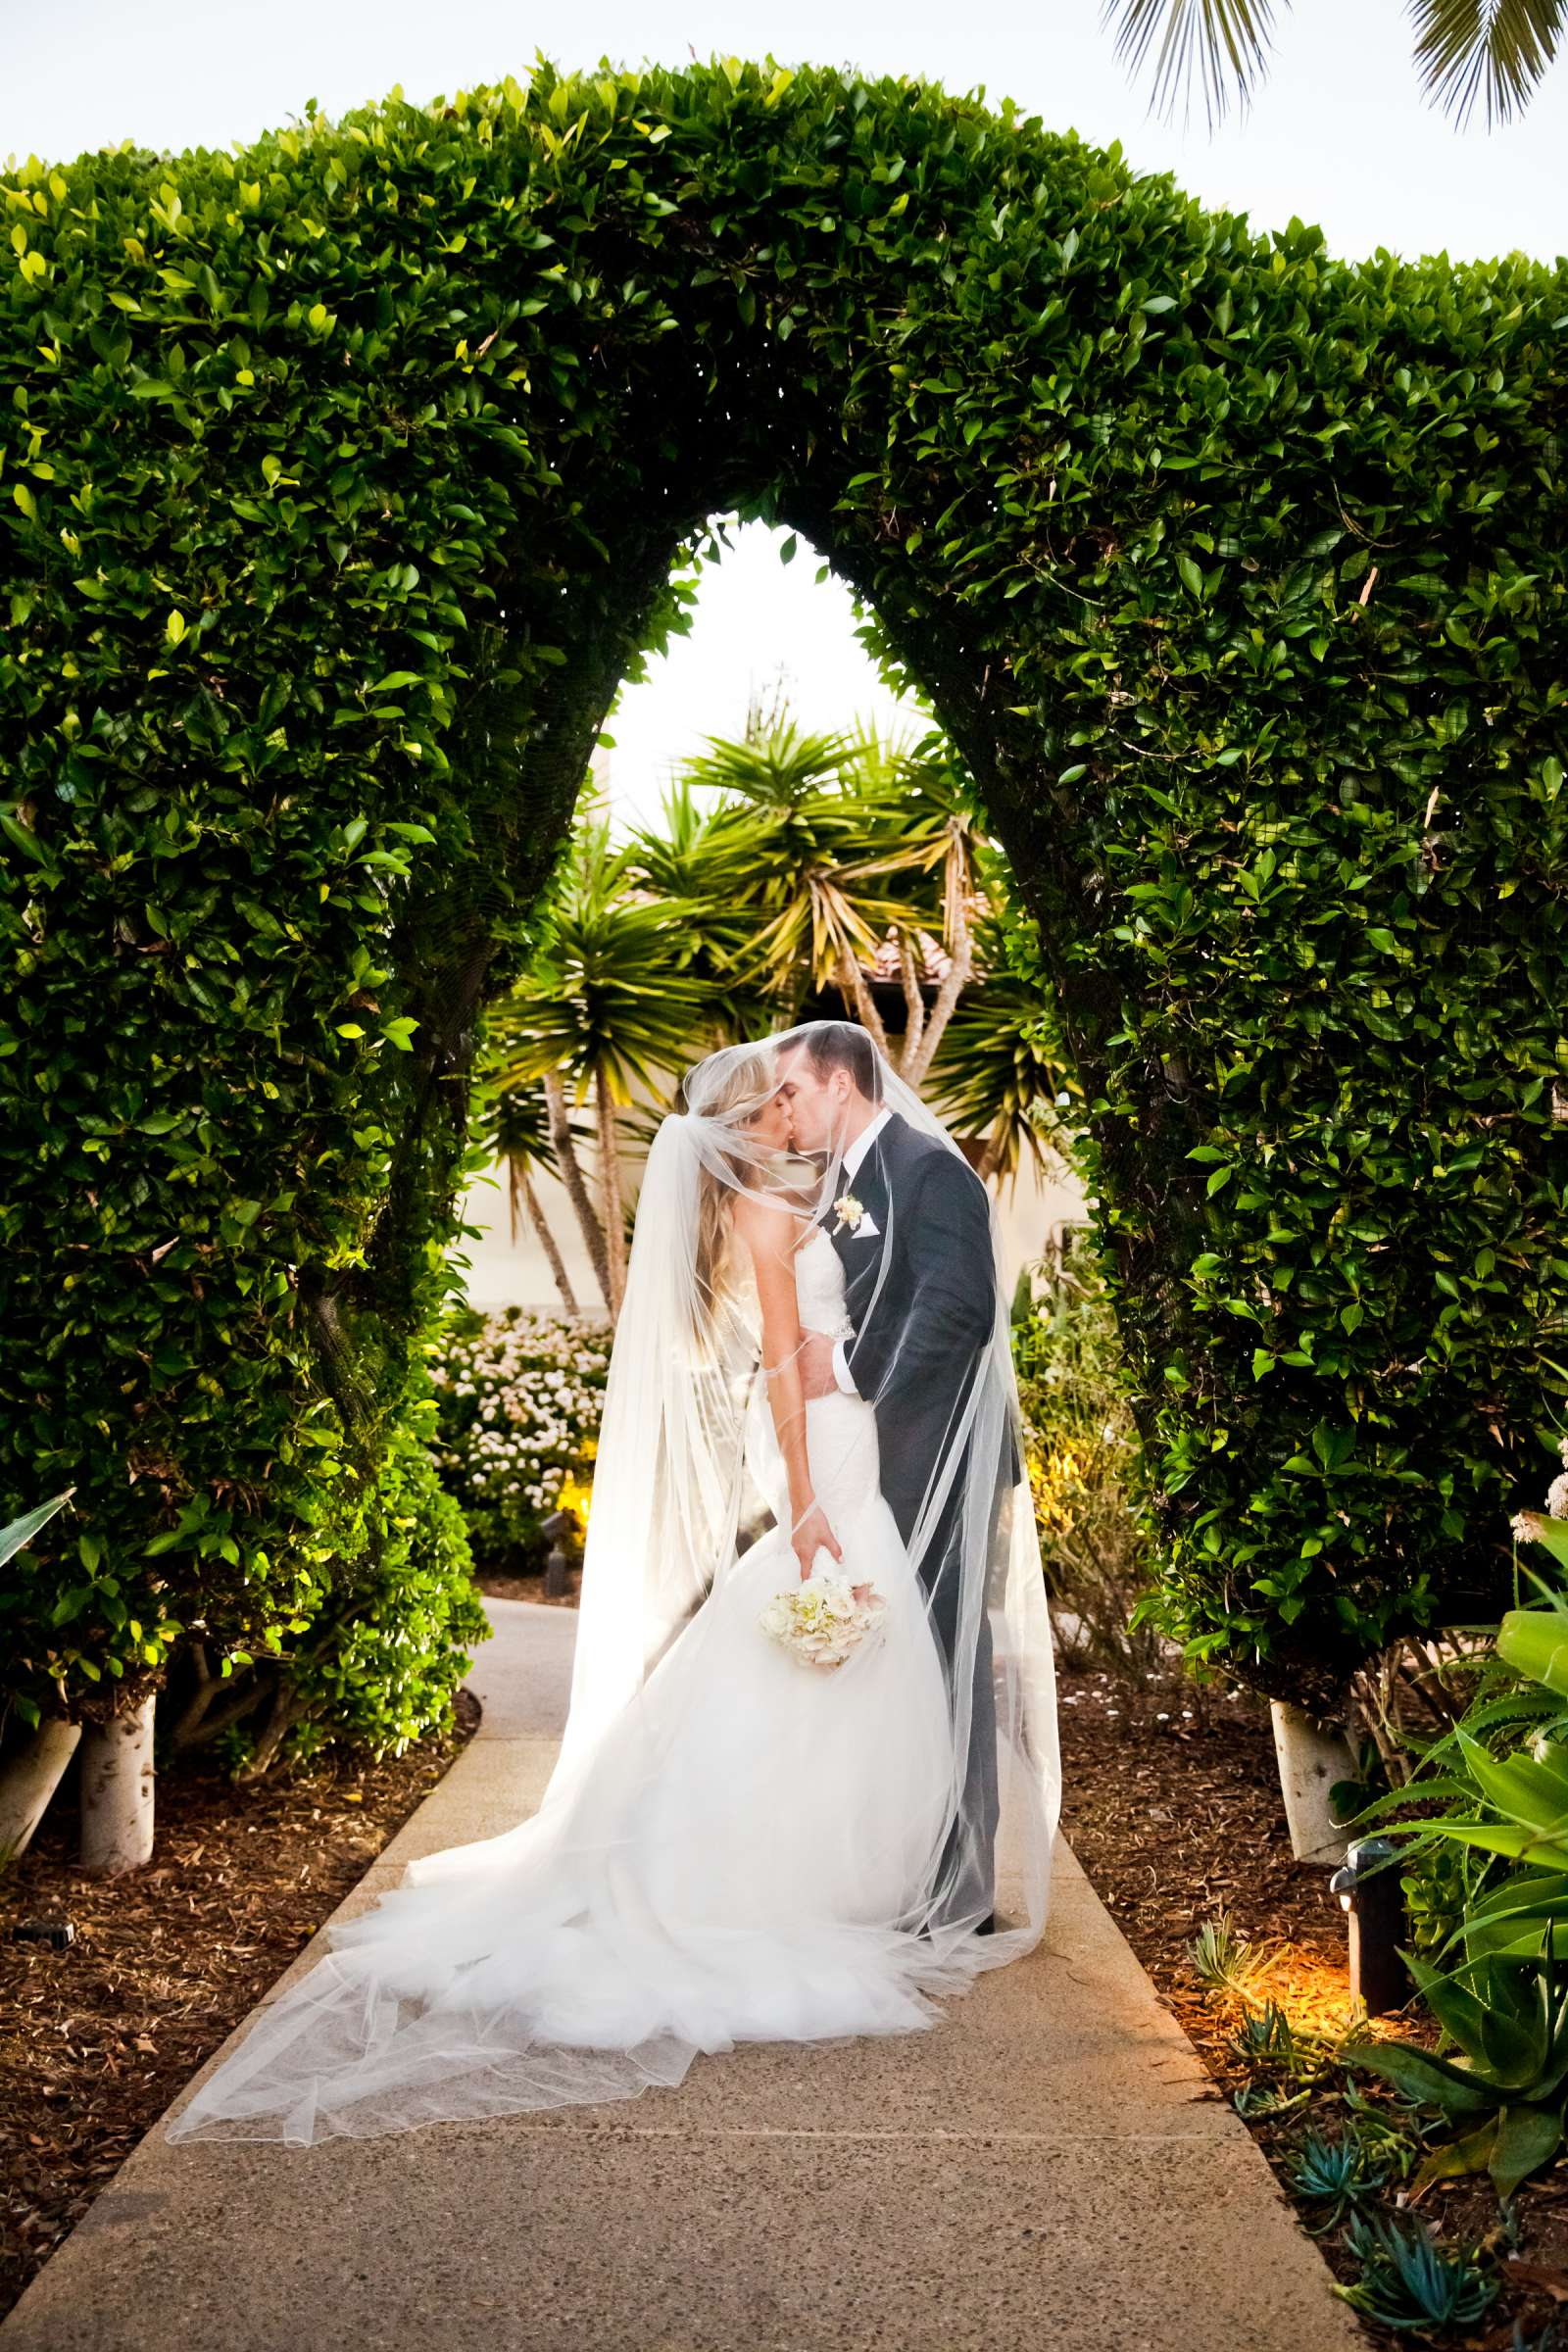 Estancia Wedding coordinated by Pink Papaya, Brittni and Nicholas Wedding Photo #142937 by True Photography